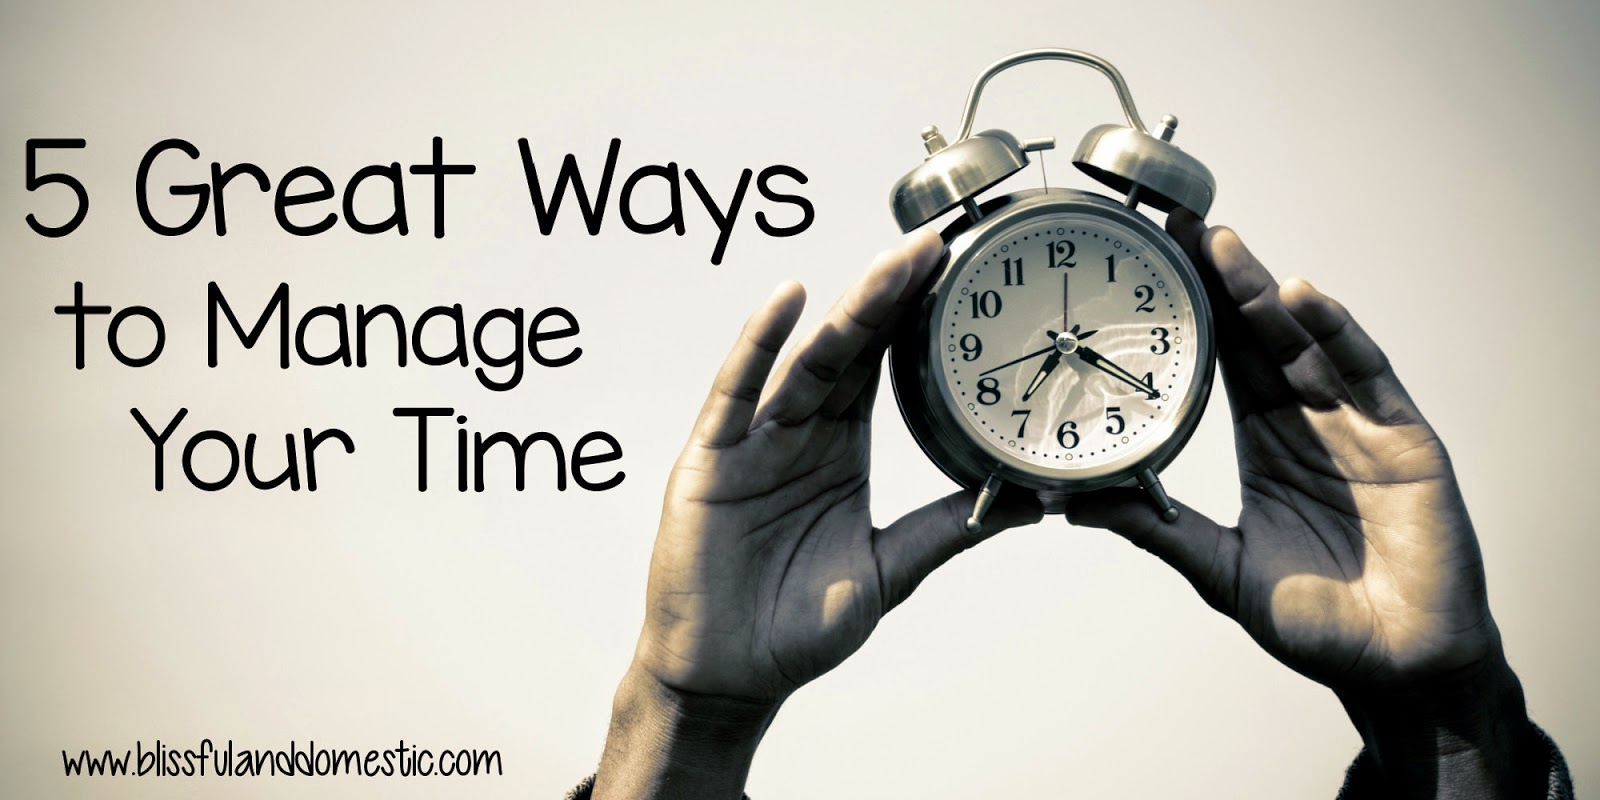 Five Great Ways to Manage Your Time